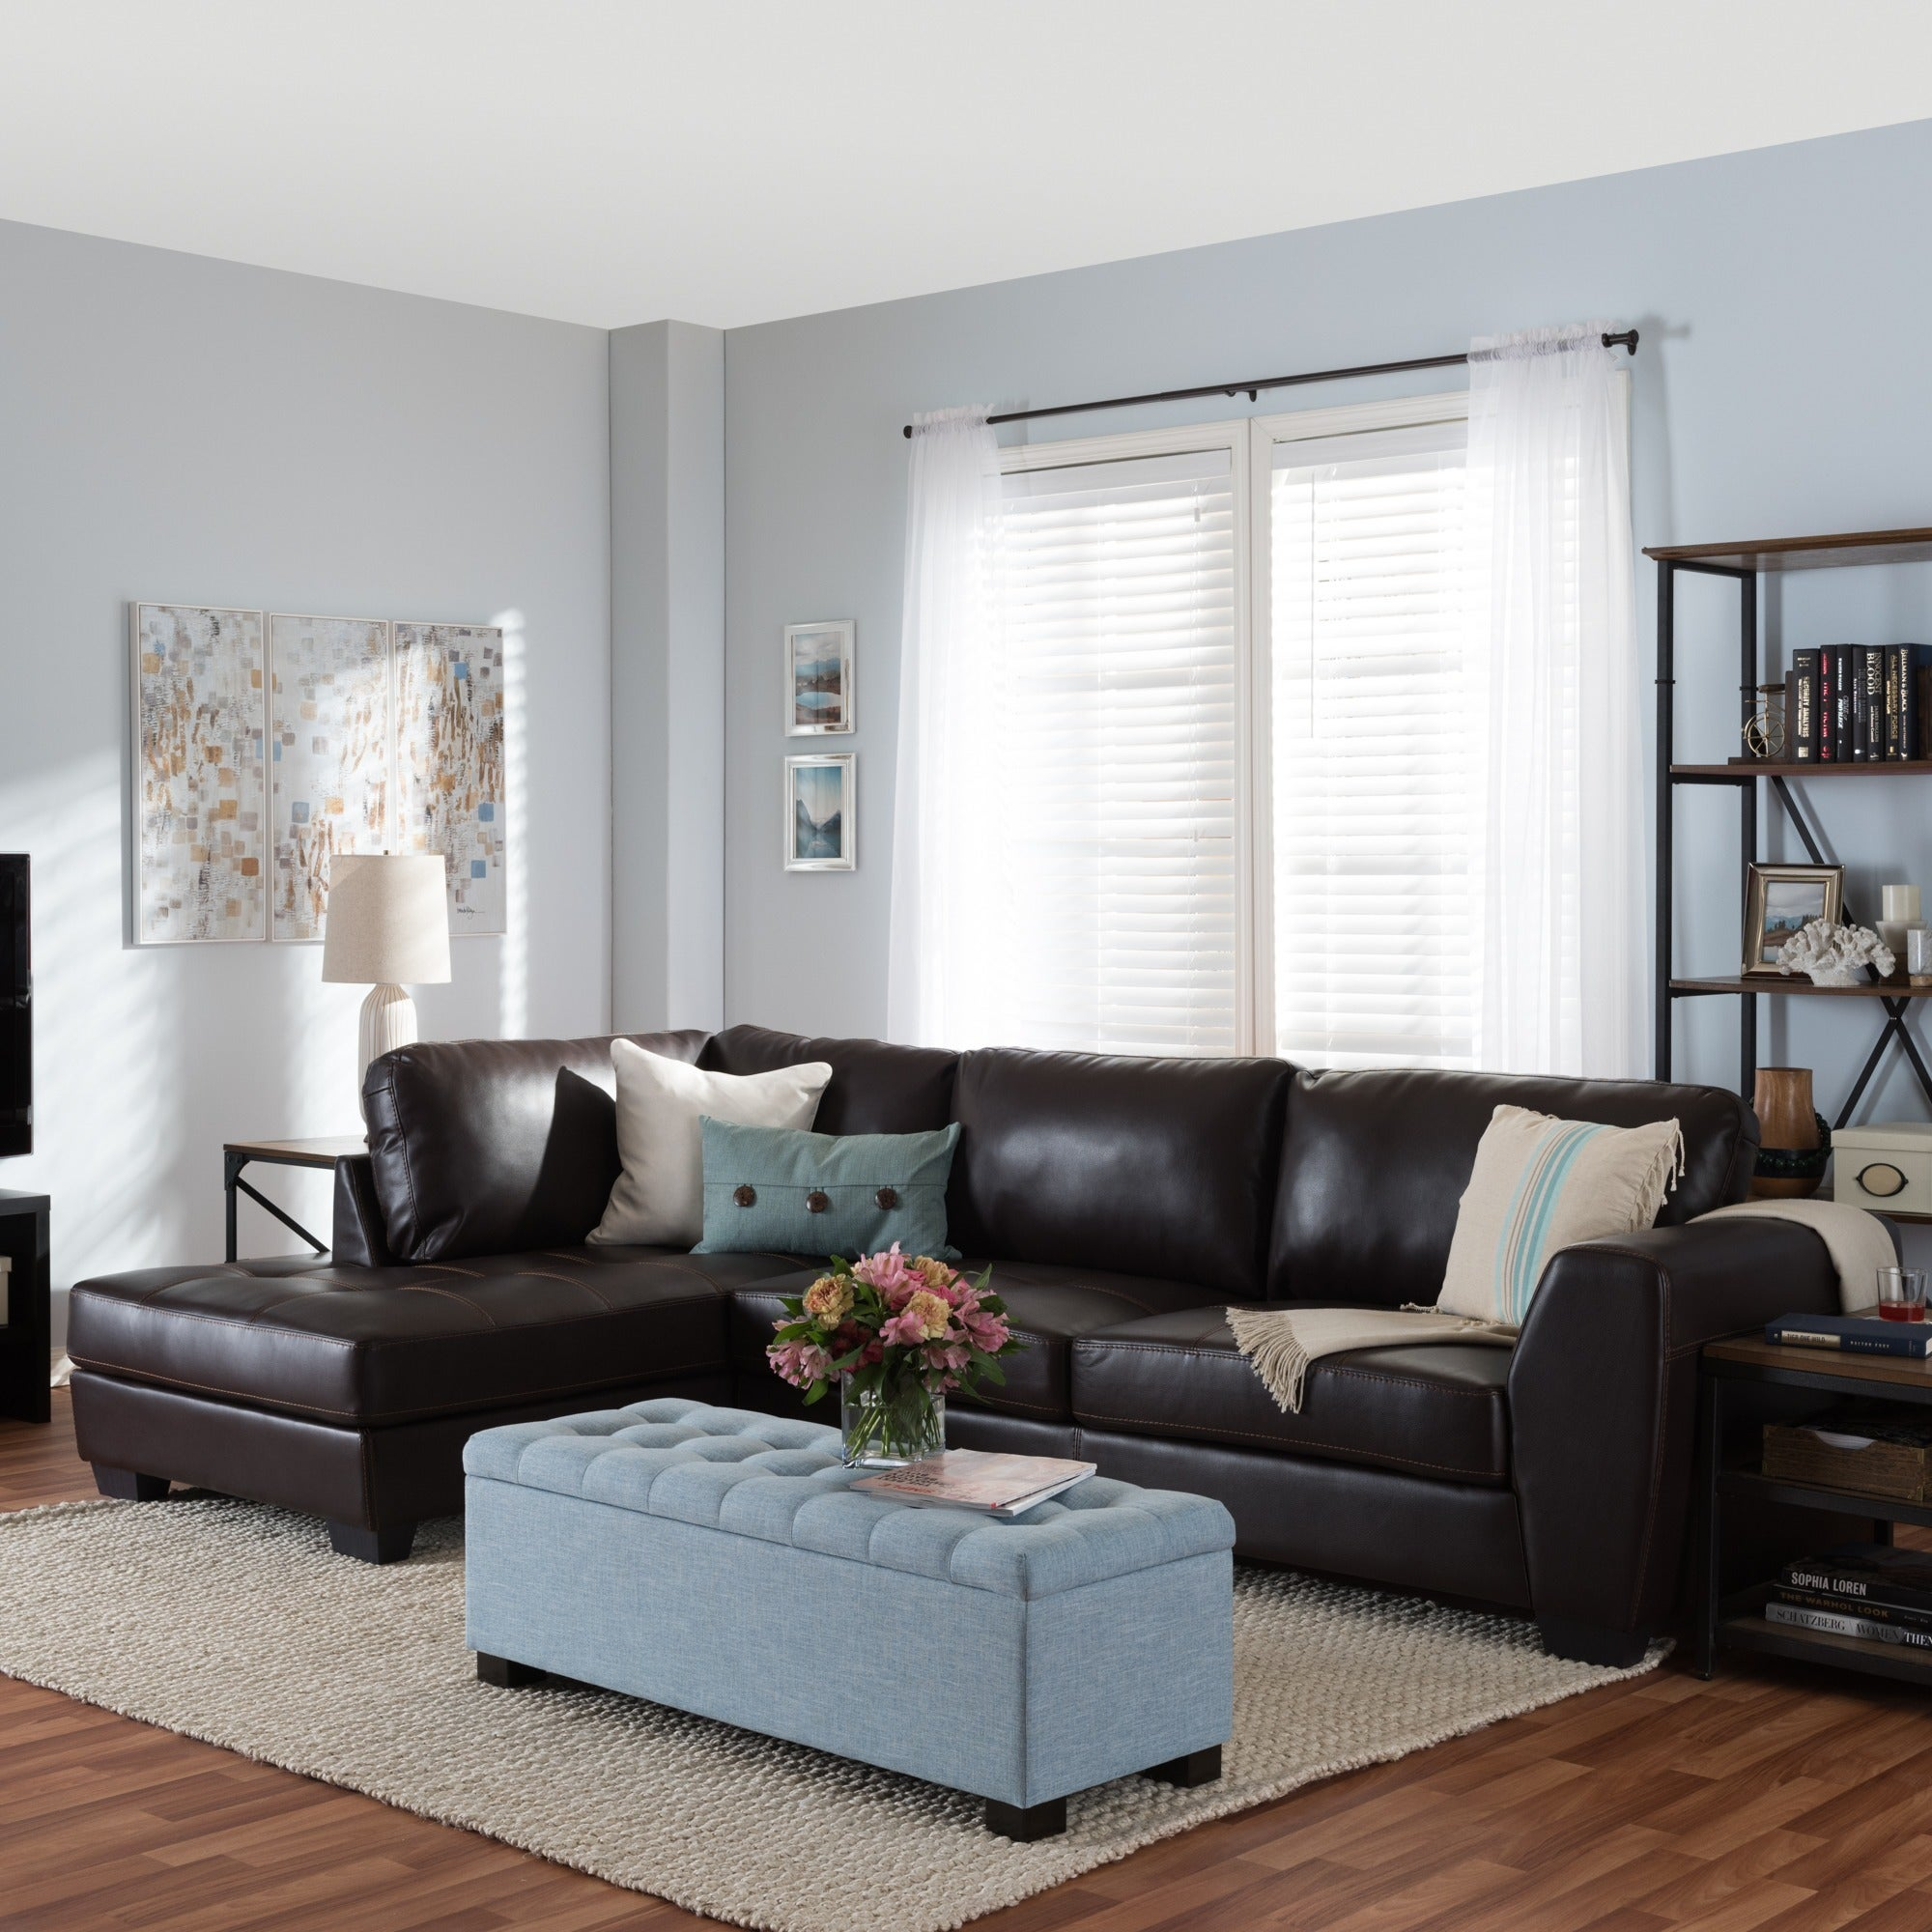 Orland Brown Leather Modern Sectional Sofa Set With Left Facing Chaise Free Shipping On Orders Over 45 7123337